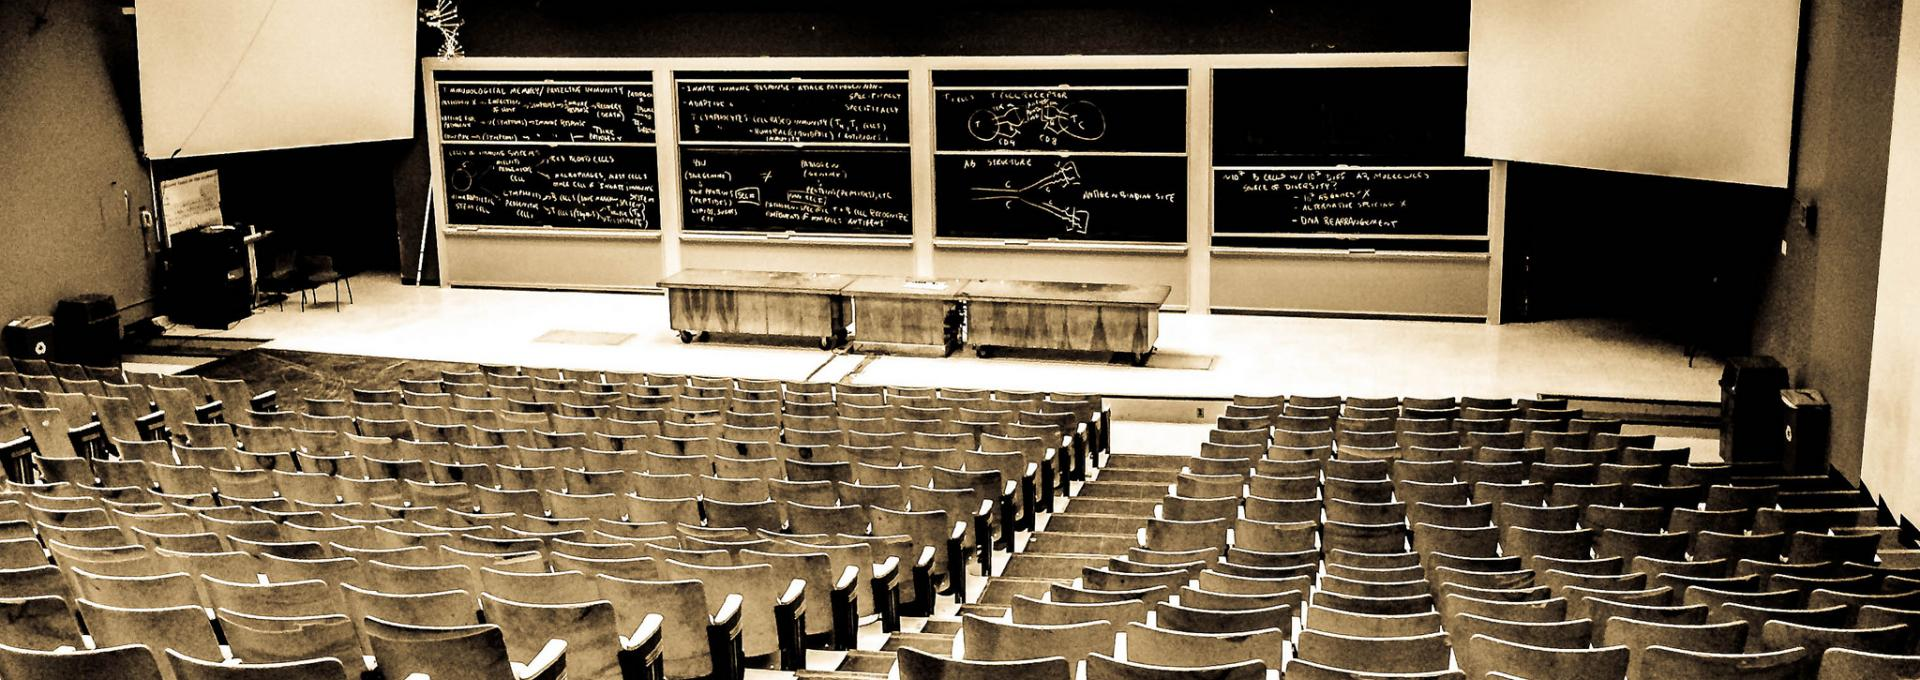 empty lecture hall viewed from the back